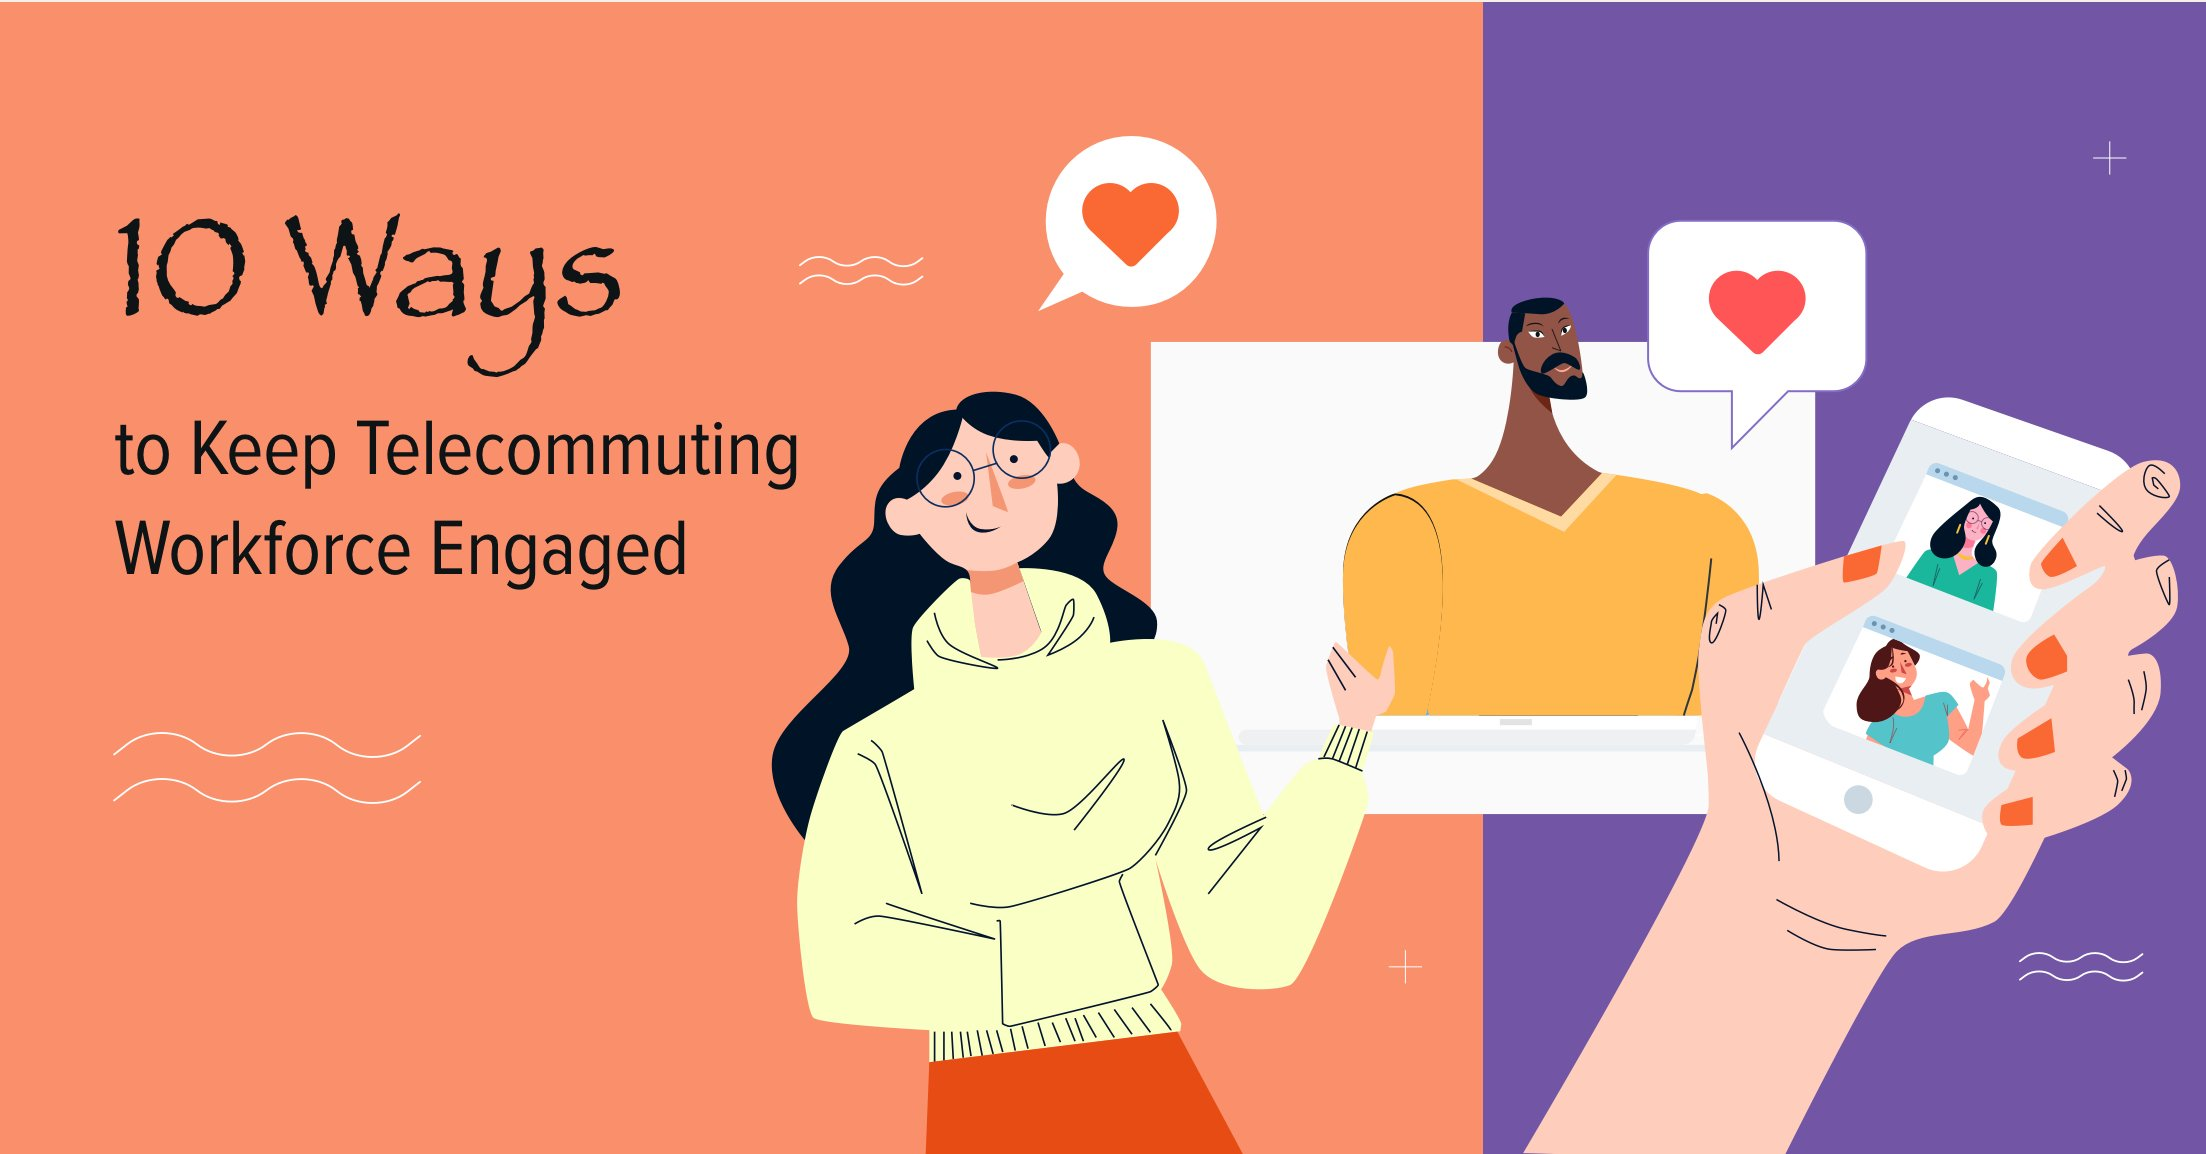 10 Ways to Keep Telecommuting Workforce Engaged